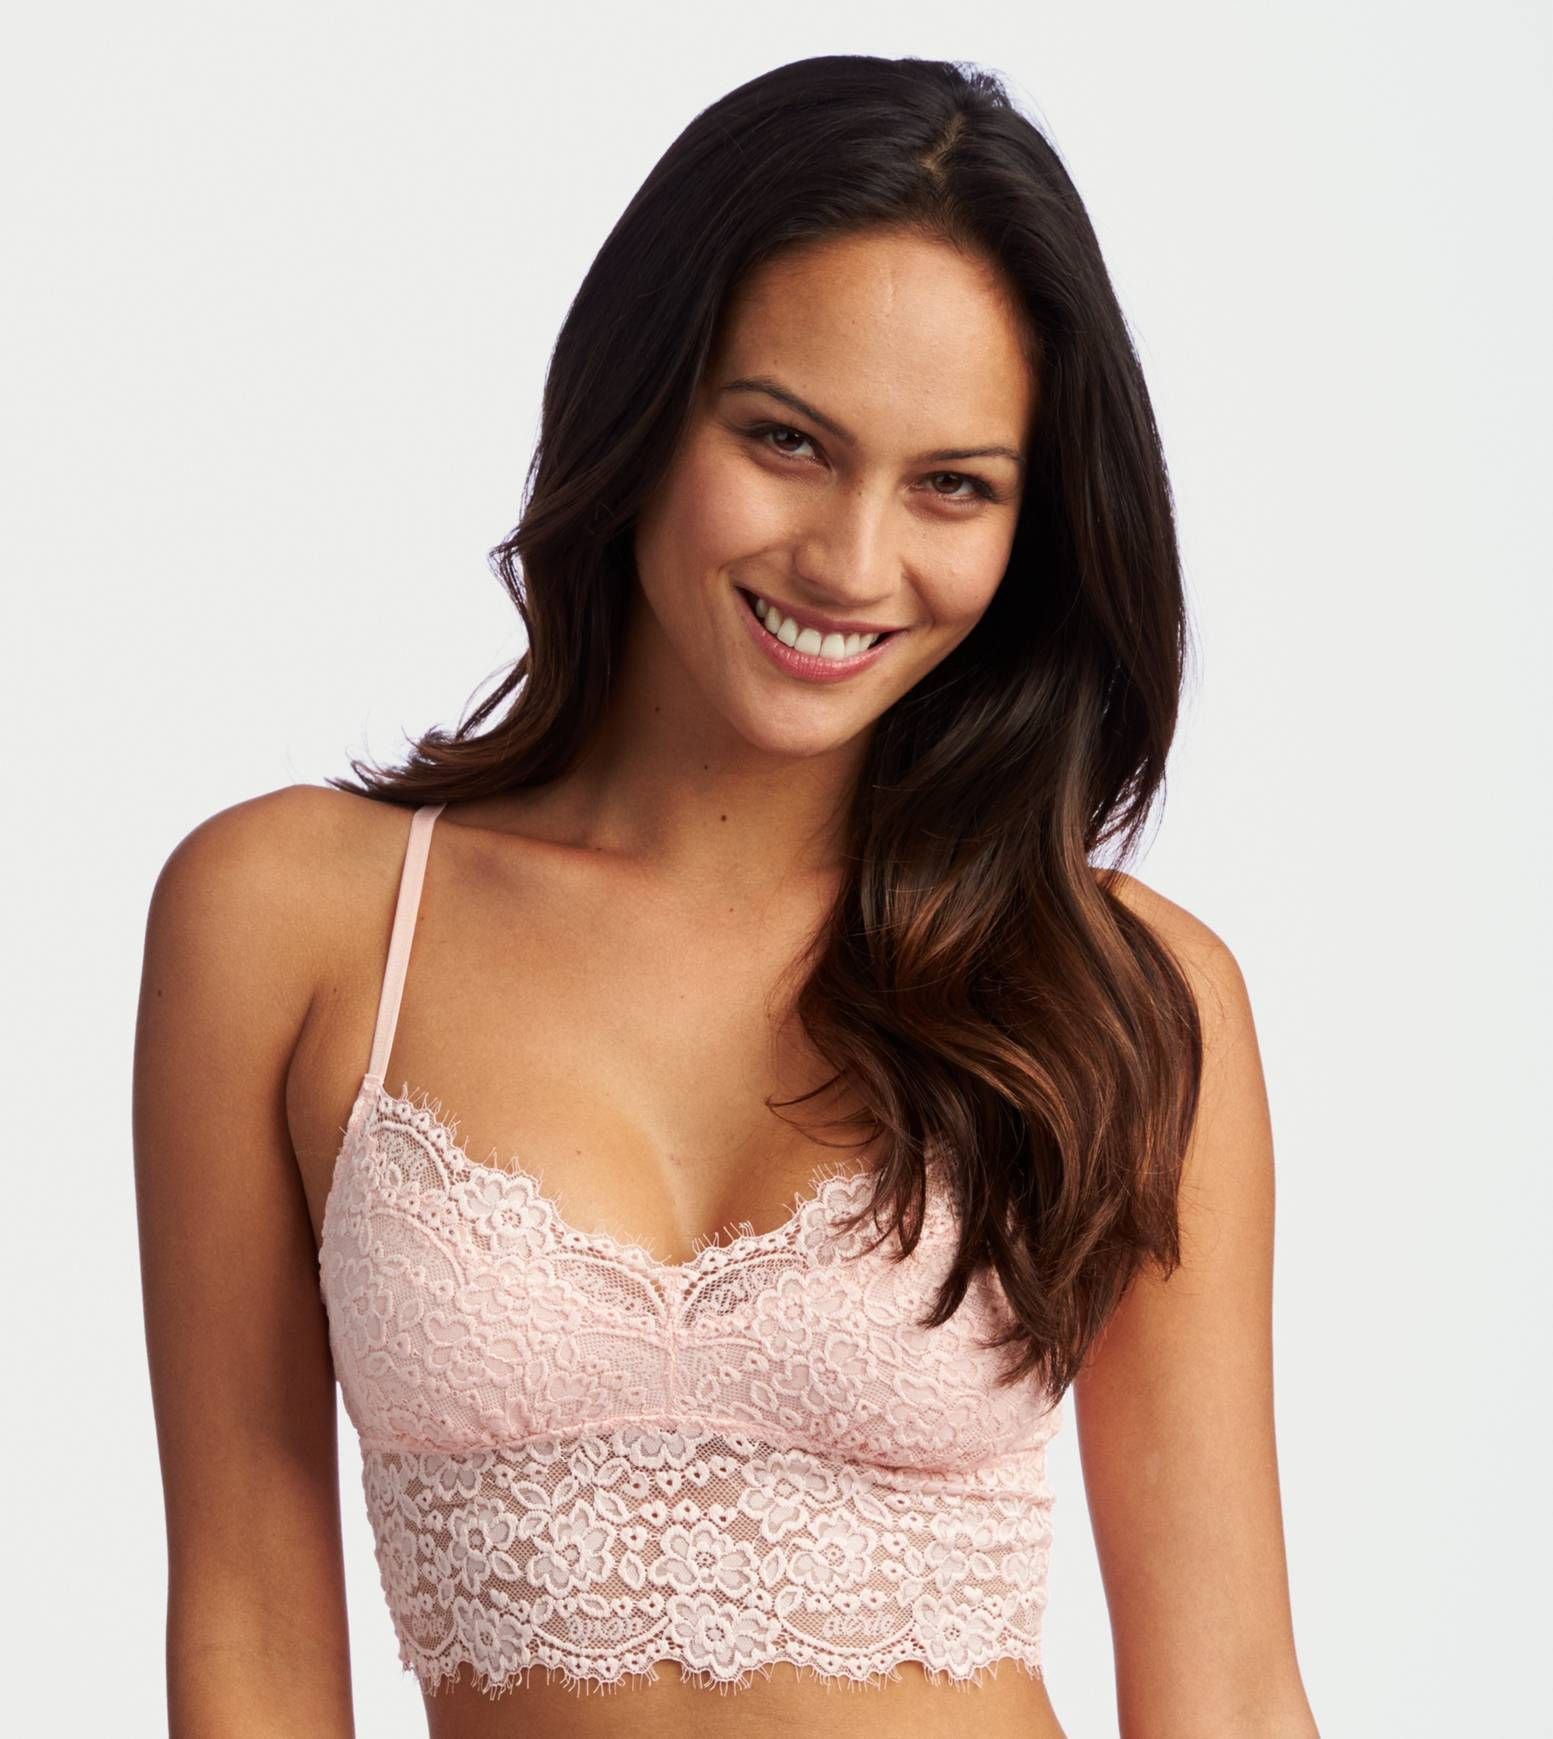 dceca16c9 Peach Wash Aerie Romantic Lace Bralette - Softest lace in a pretty shape!   Aerie